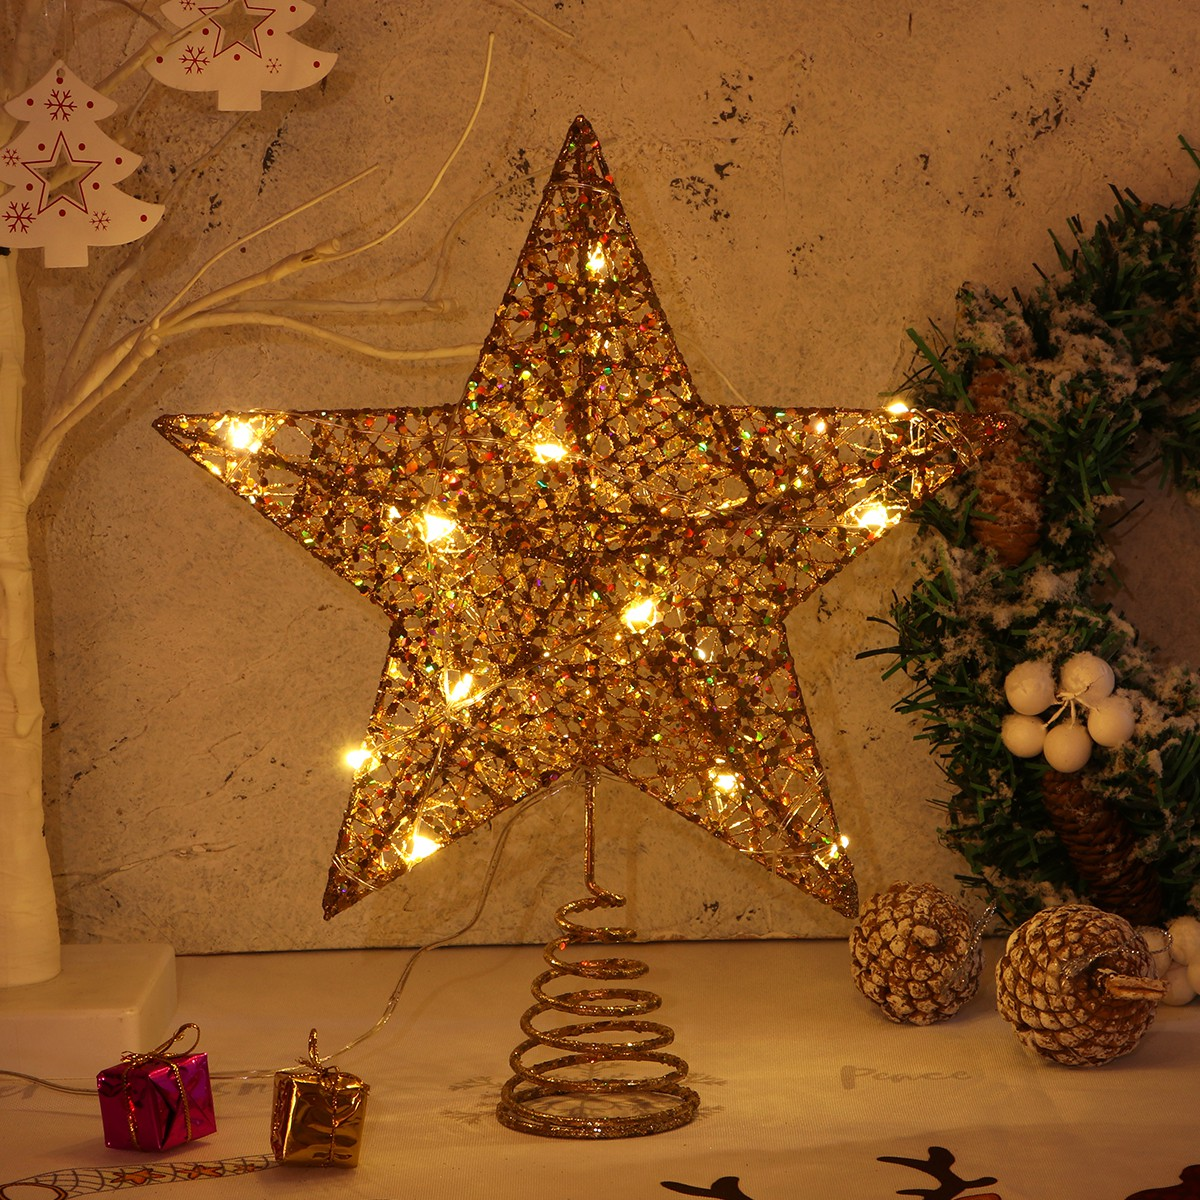 25 X 30cm Christmas Gift Christmas Tree Topper Star Warm Lights For Christmas Party Decoration Shopee Philippines